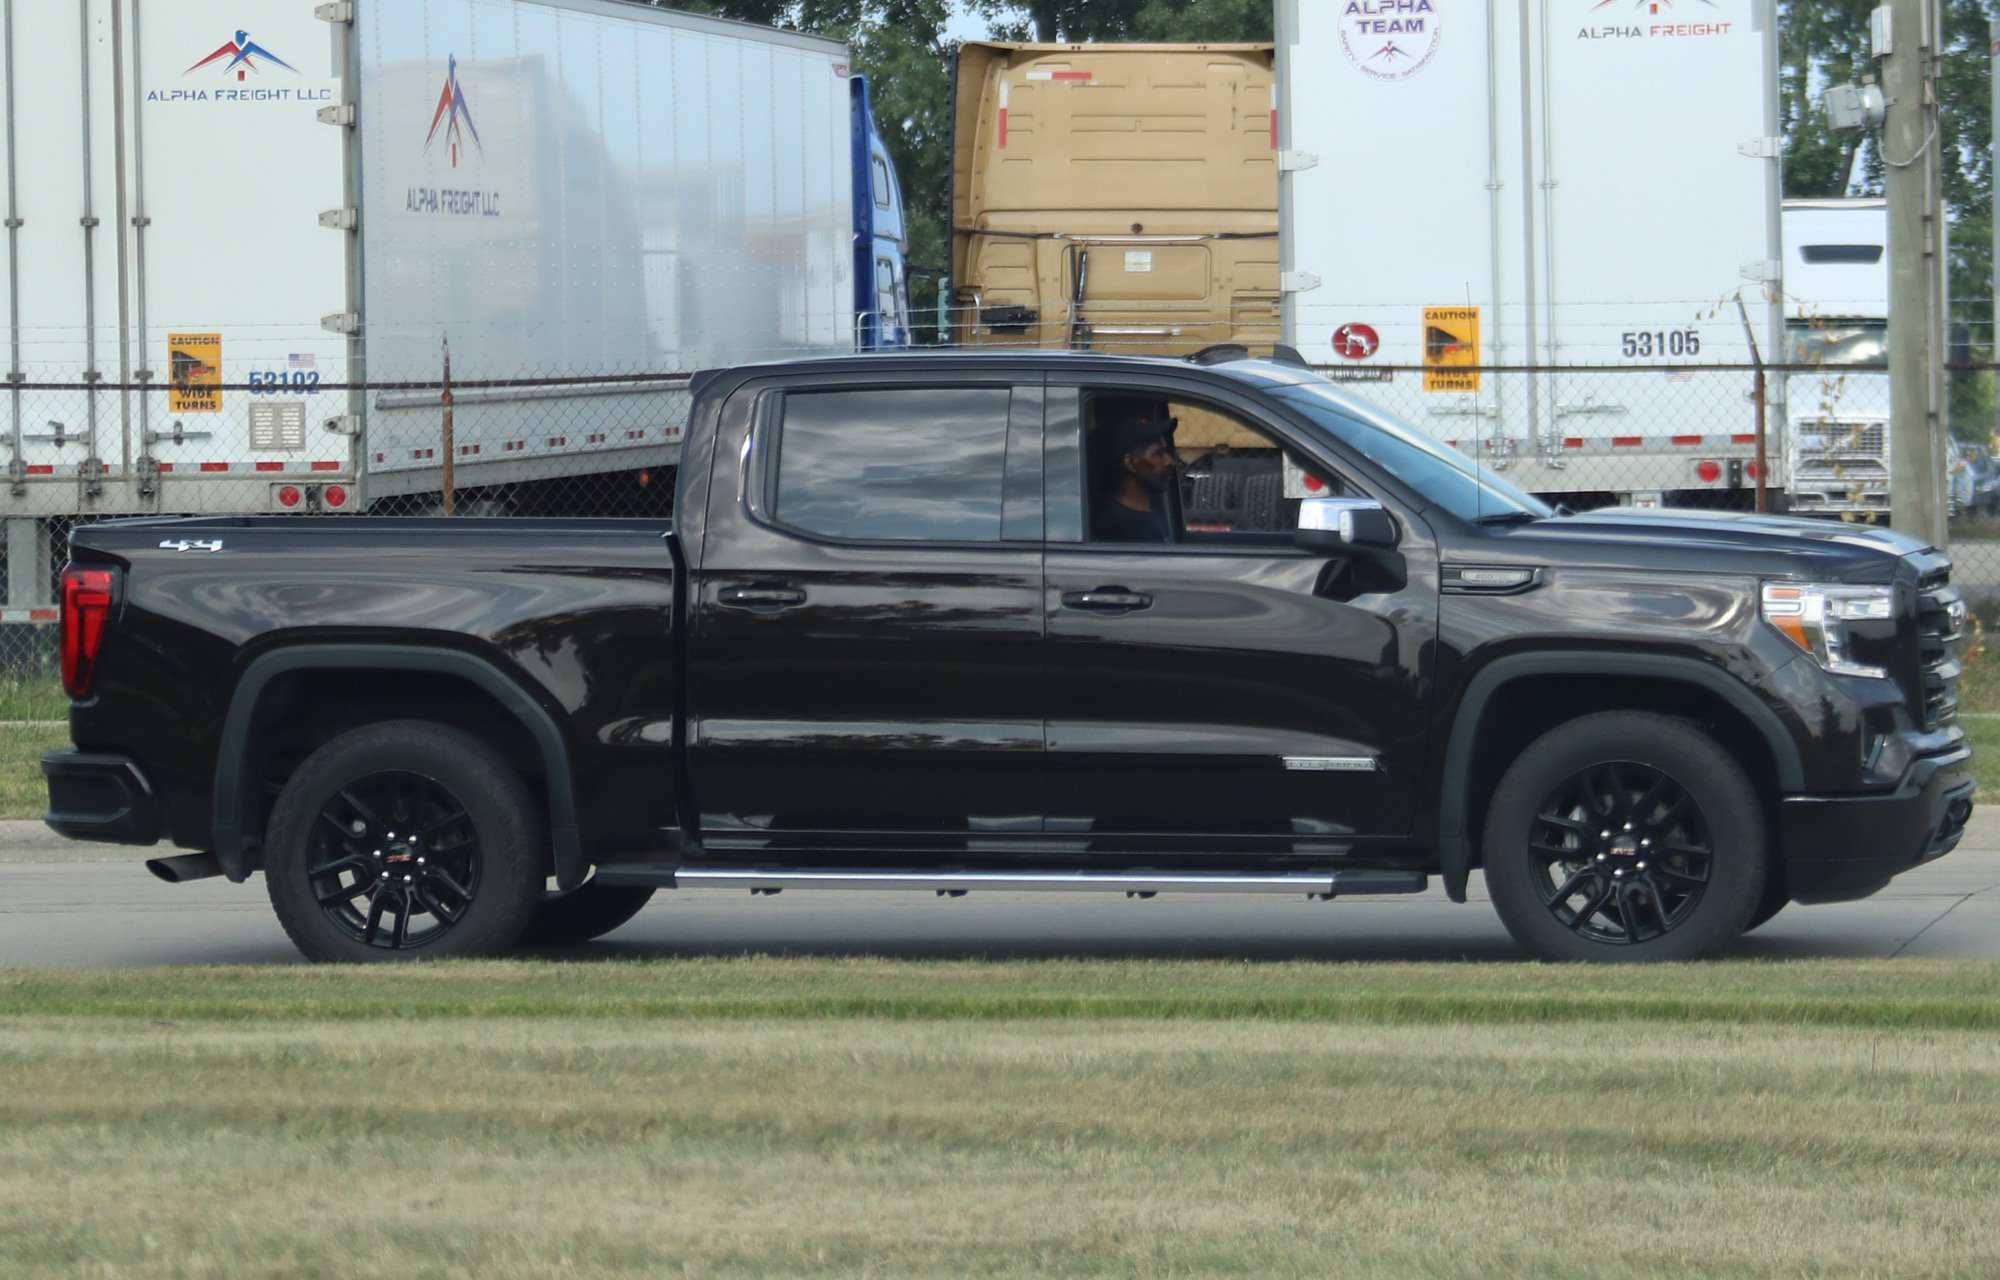 28 Best 2019 Gmc Elevation Edition Price Design And Review